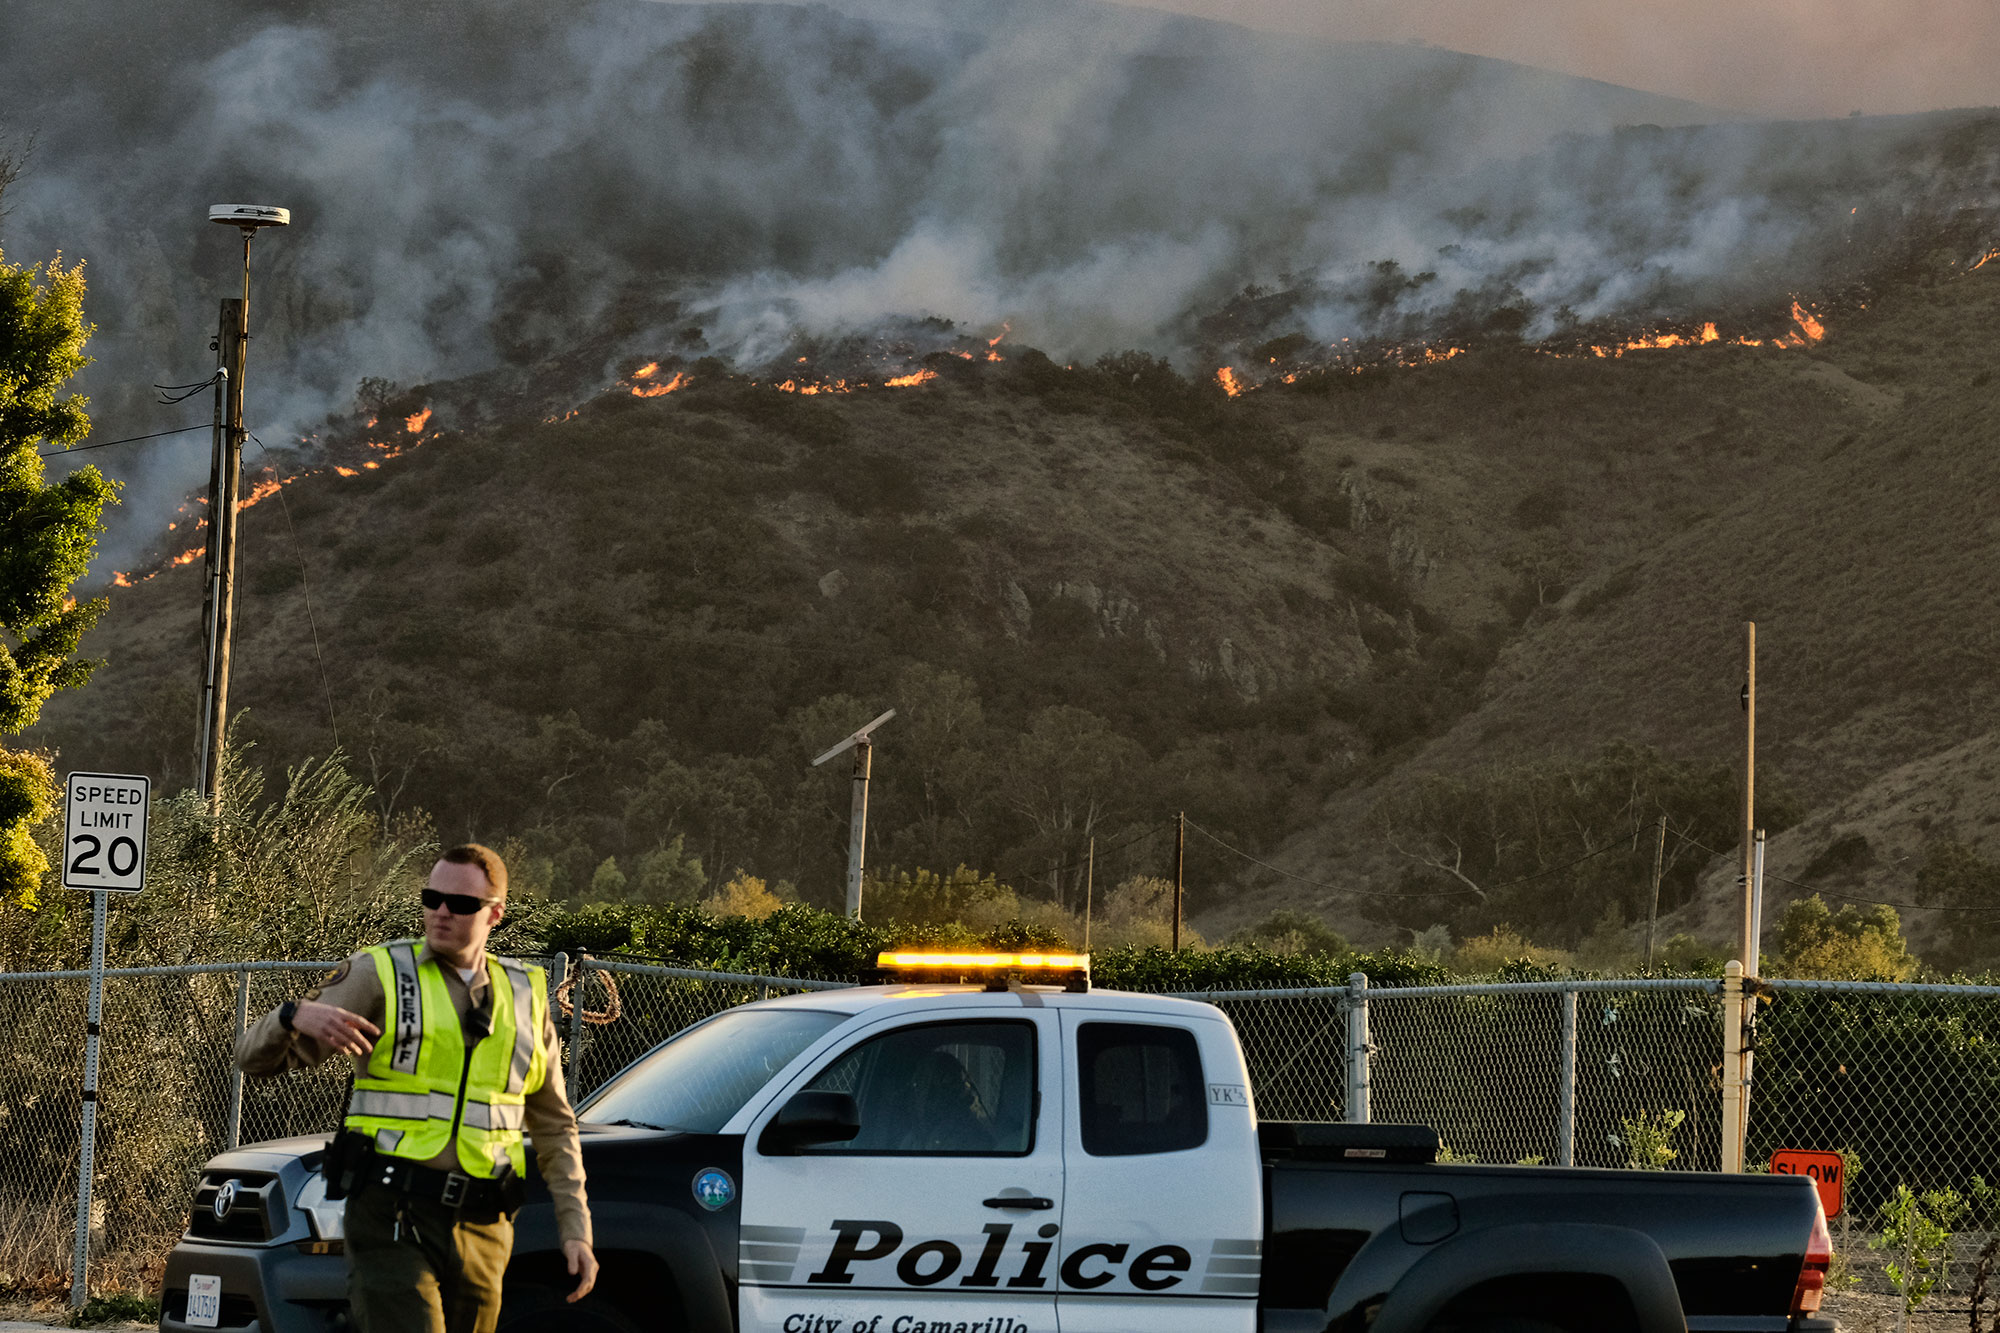 <div class='meta'><div class='origin-logo' data-origin='none'></div><span class='caption-text' data-credit='Richard Vogel/AP Photo'>A police officer directs traffic at a checkpoint in front of an advancing wildfire Thursday, Nov. 8, 2018, near Newbury Park, Calif.</span></div>